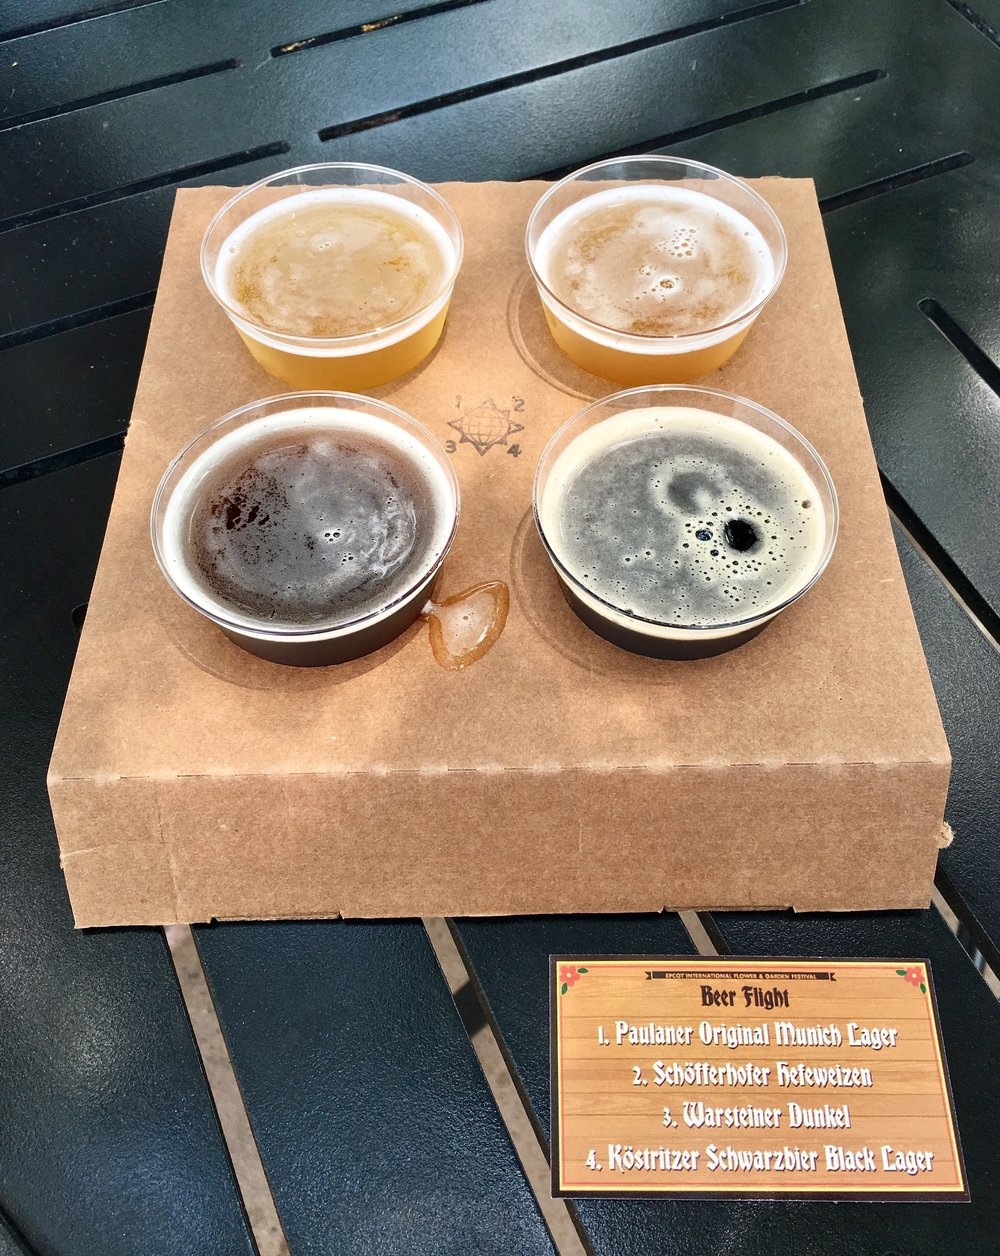 epcot-germany-beer-flight.jpg